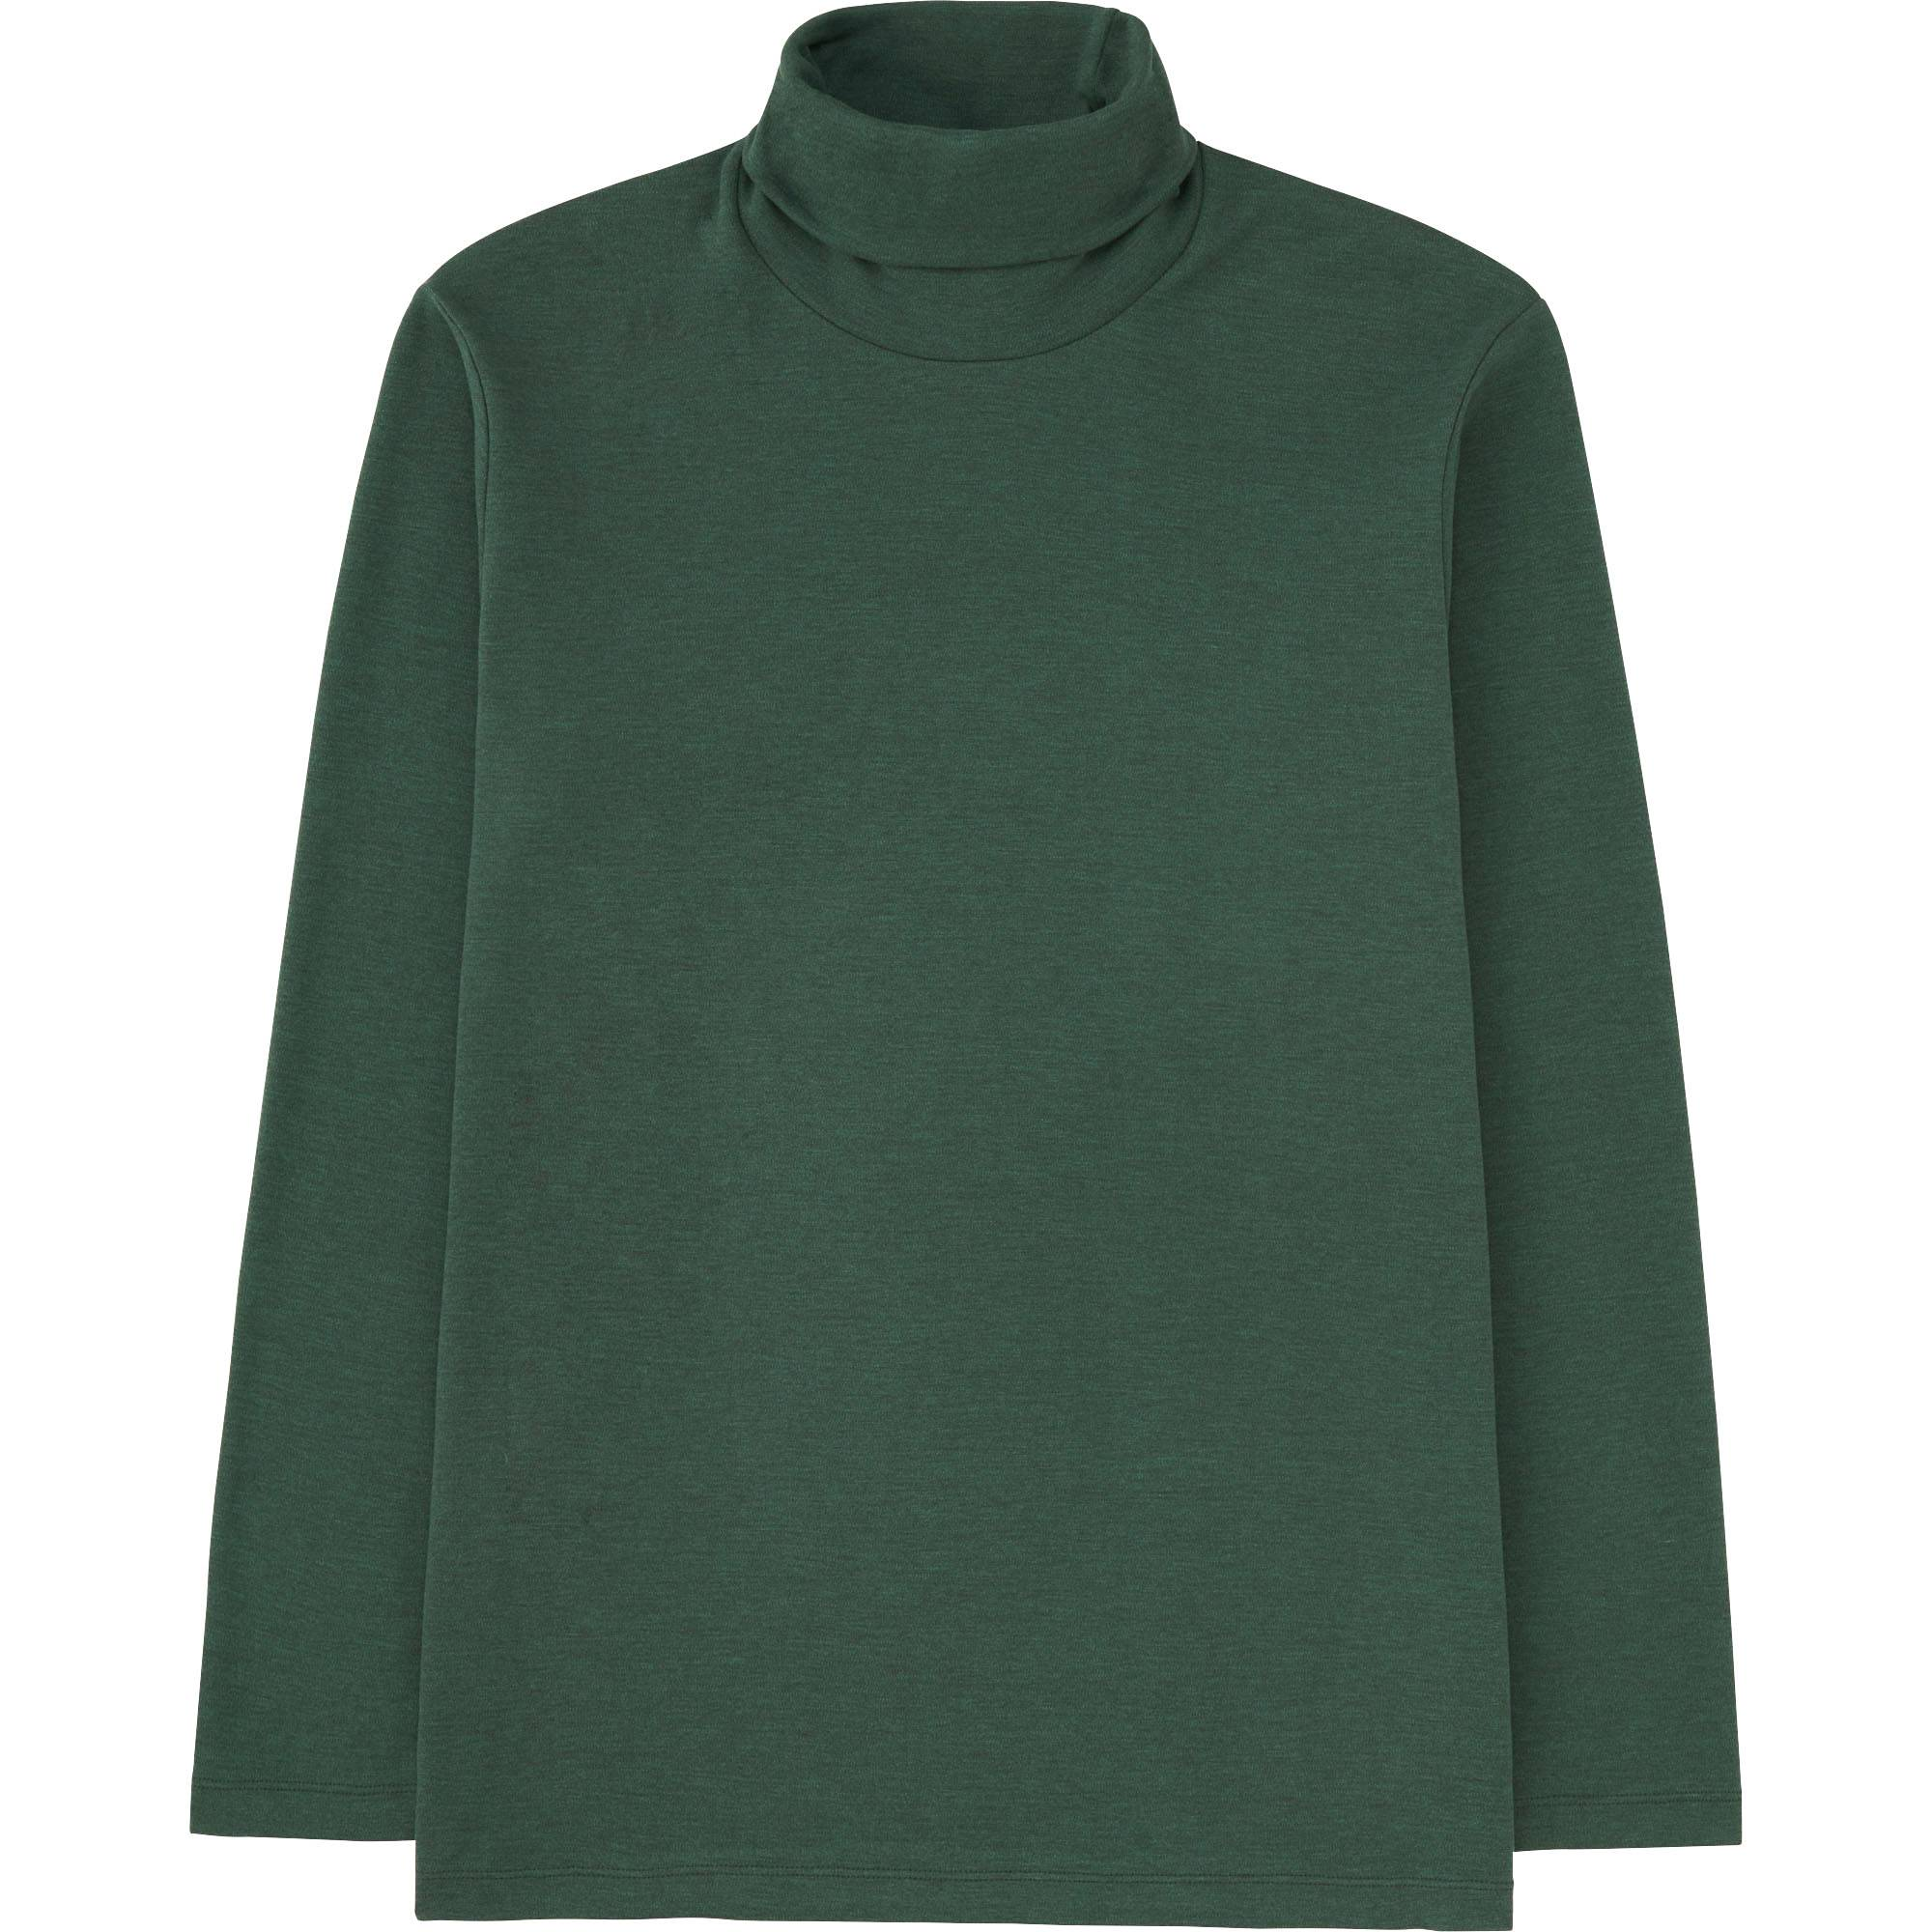 MEN SOFT TOUCH TURTLENECK LONG SLEEVE T-SHIRT | UNIQLO US